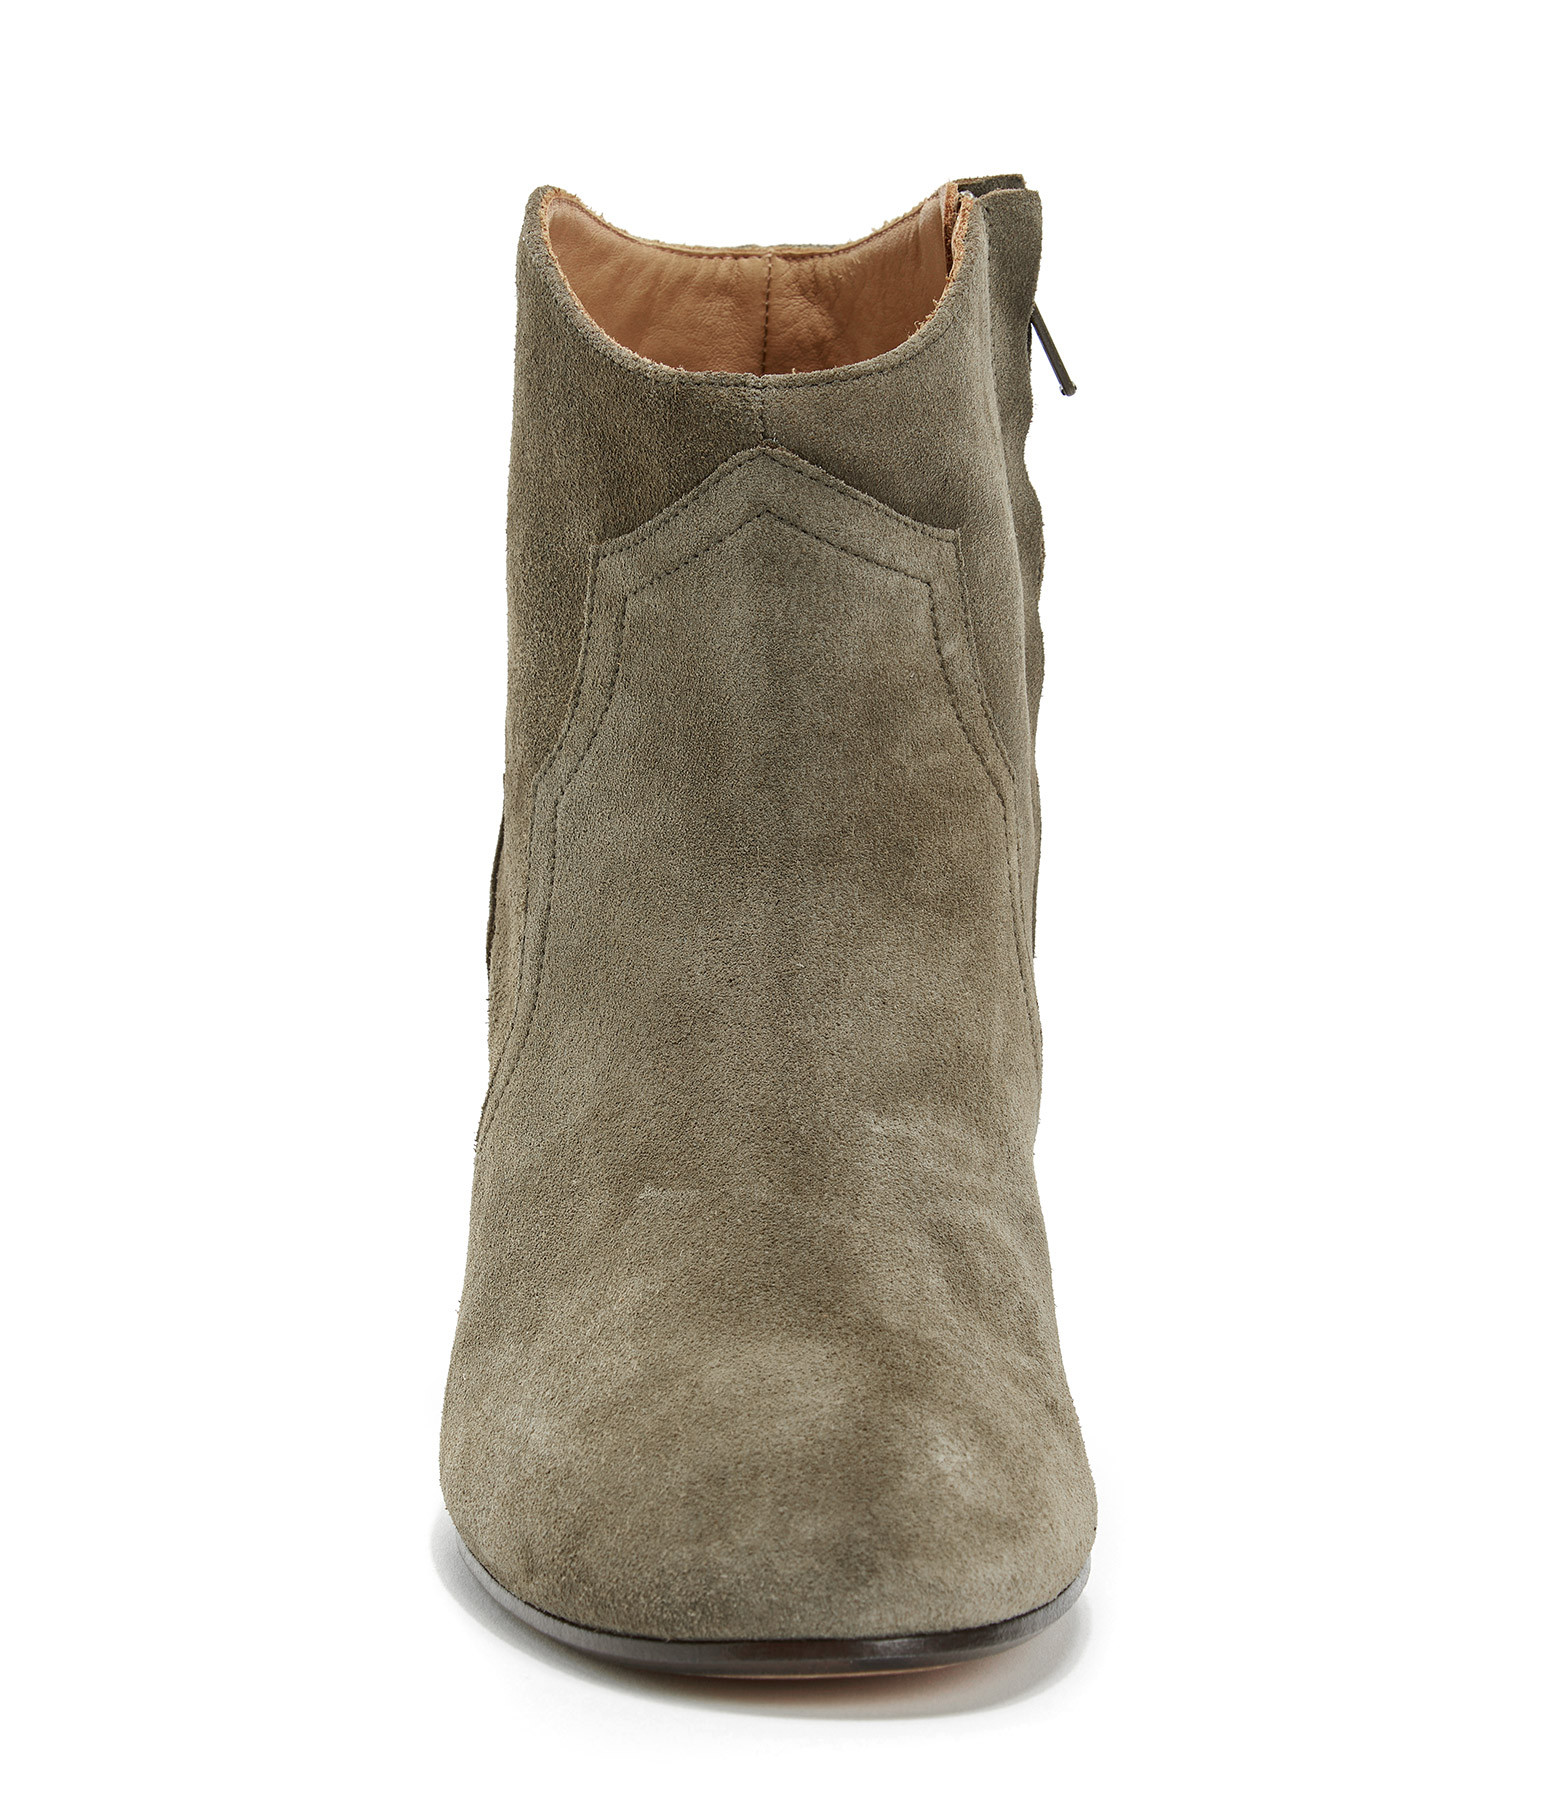 ISABEL MARANT - Bottines Dicker Veau Velours Taupe